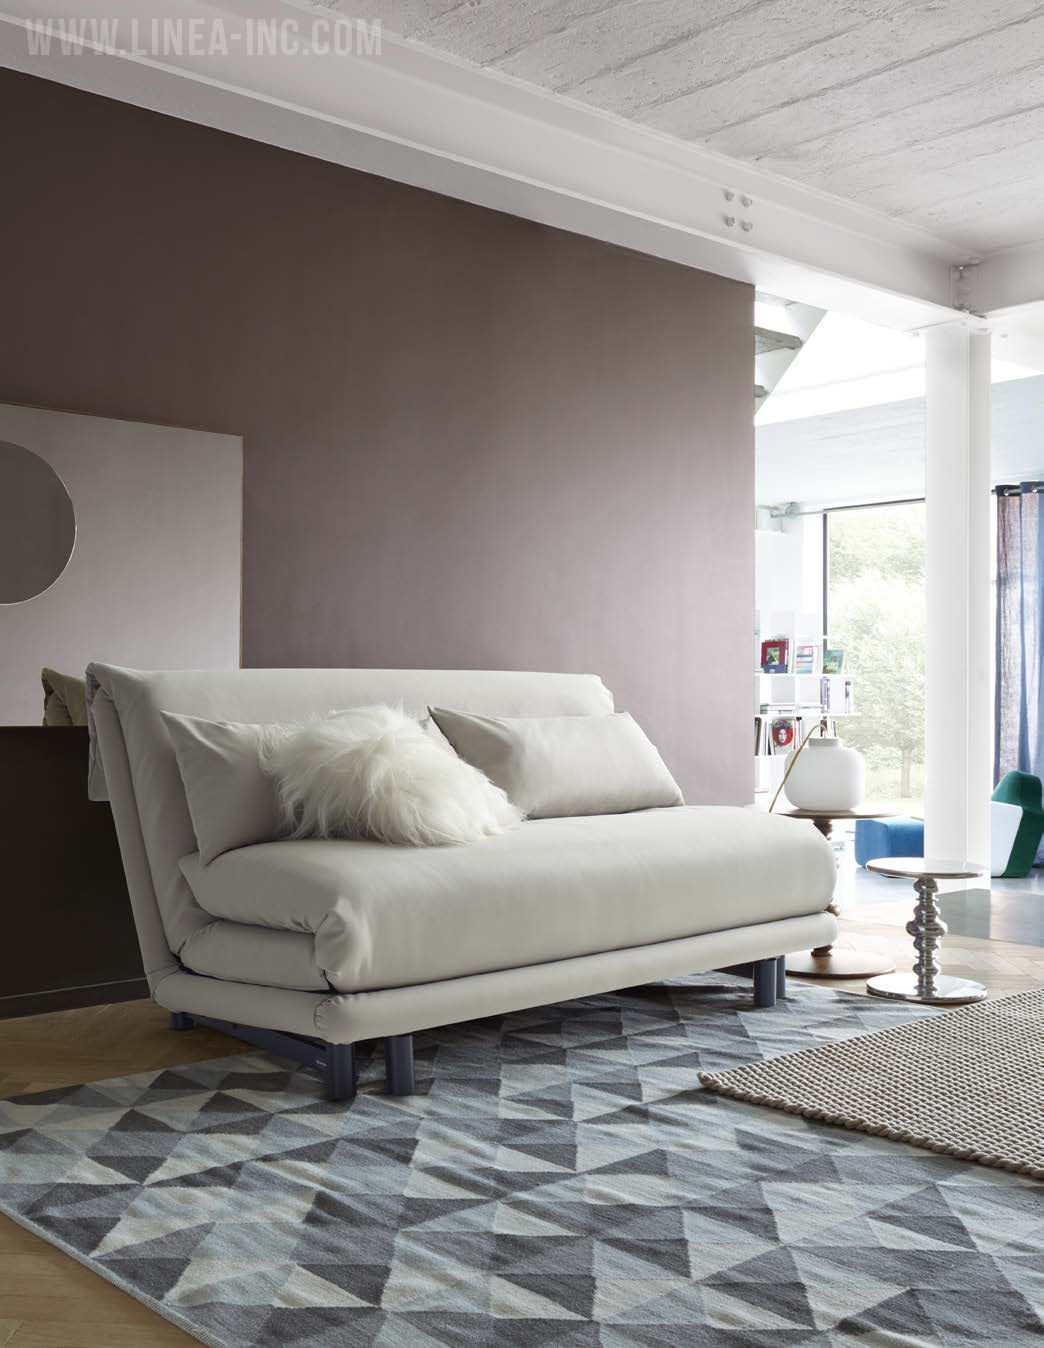 Multy Sofabed Designed By Claude Brisson For Ligne Roset